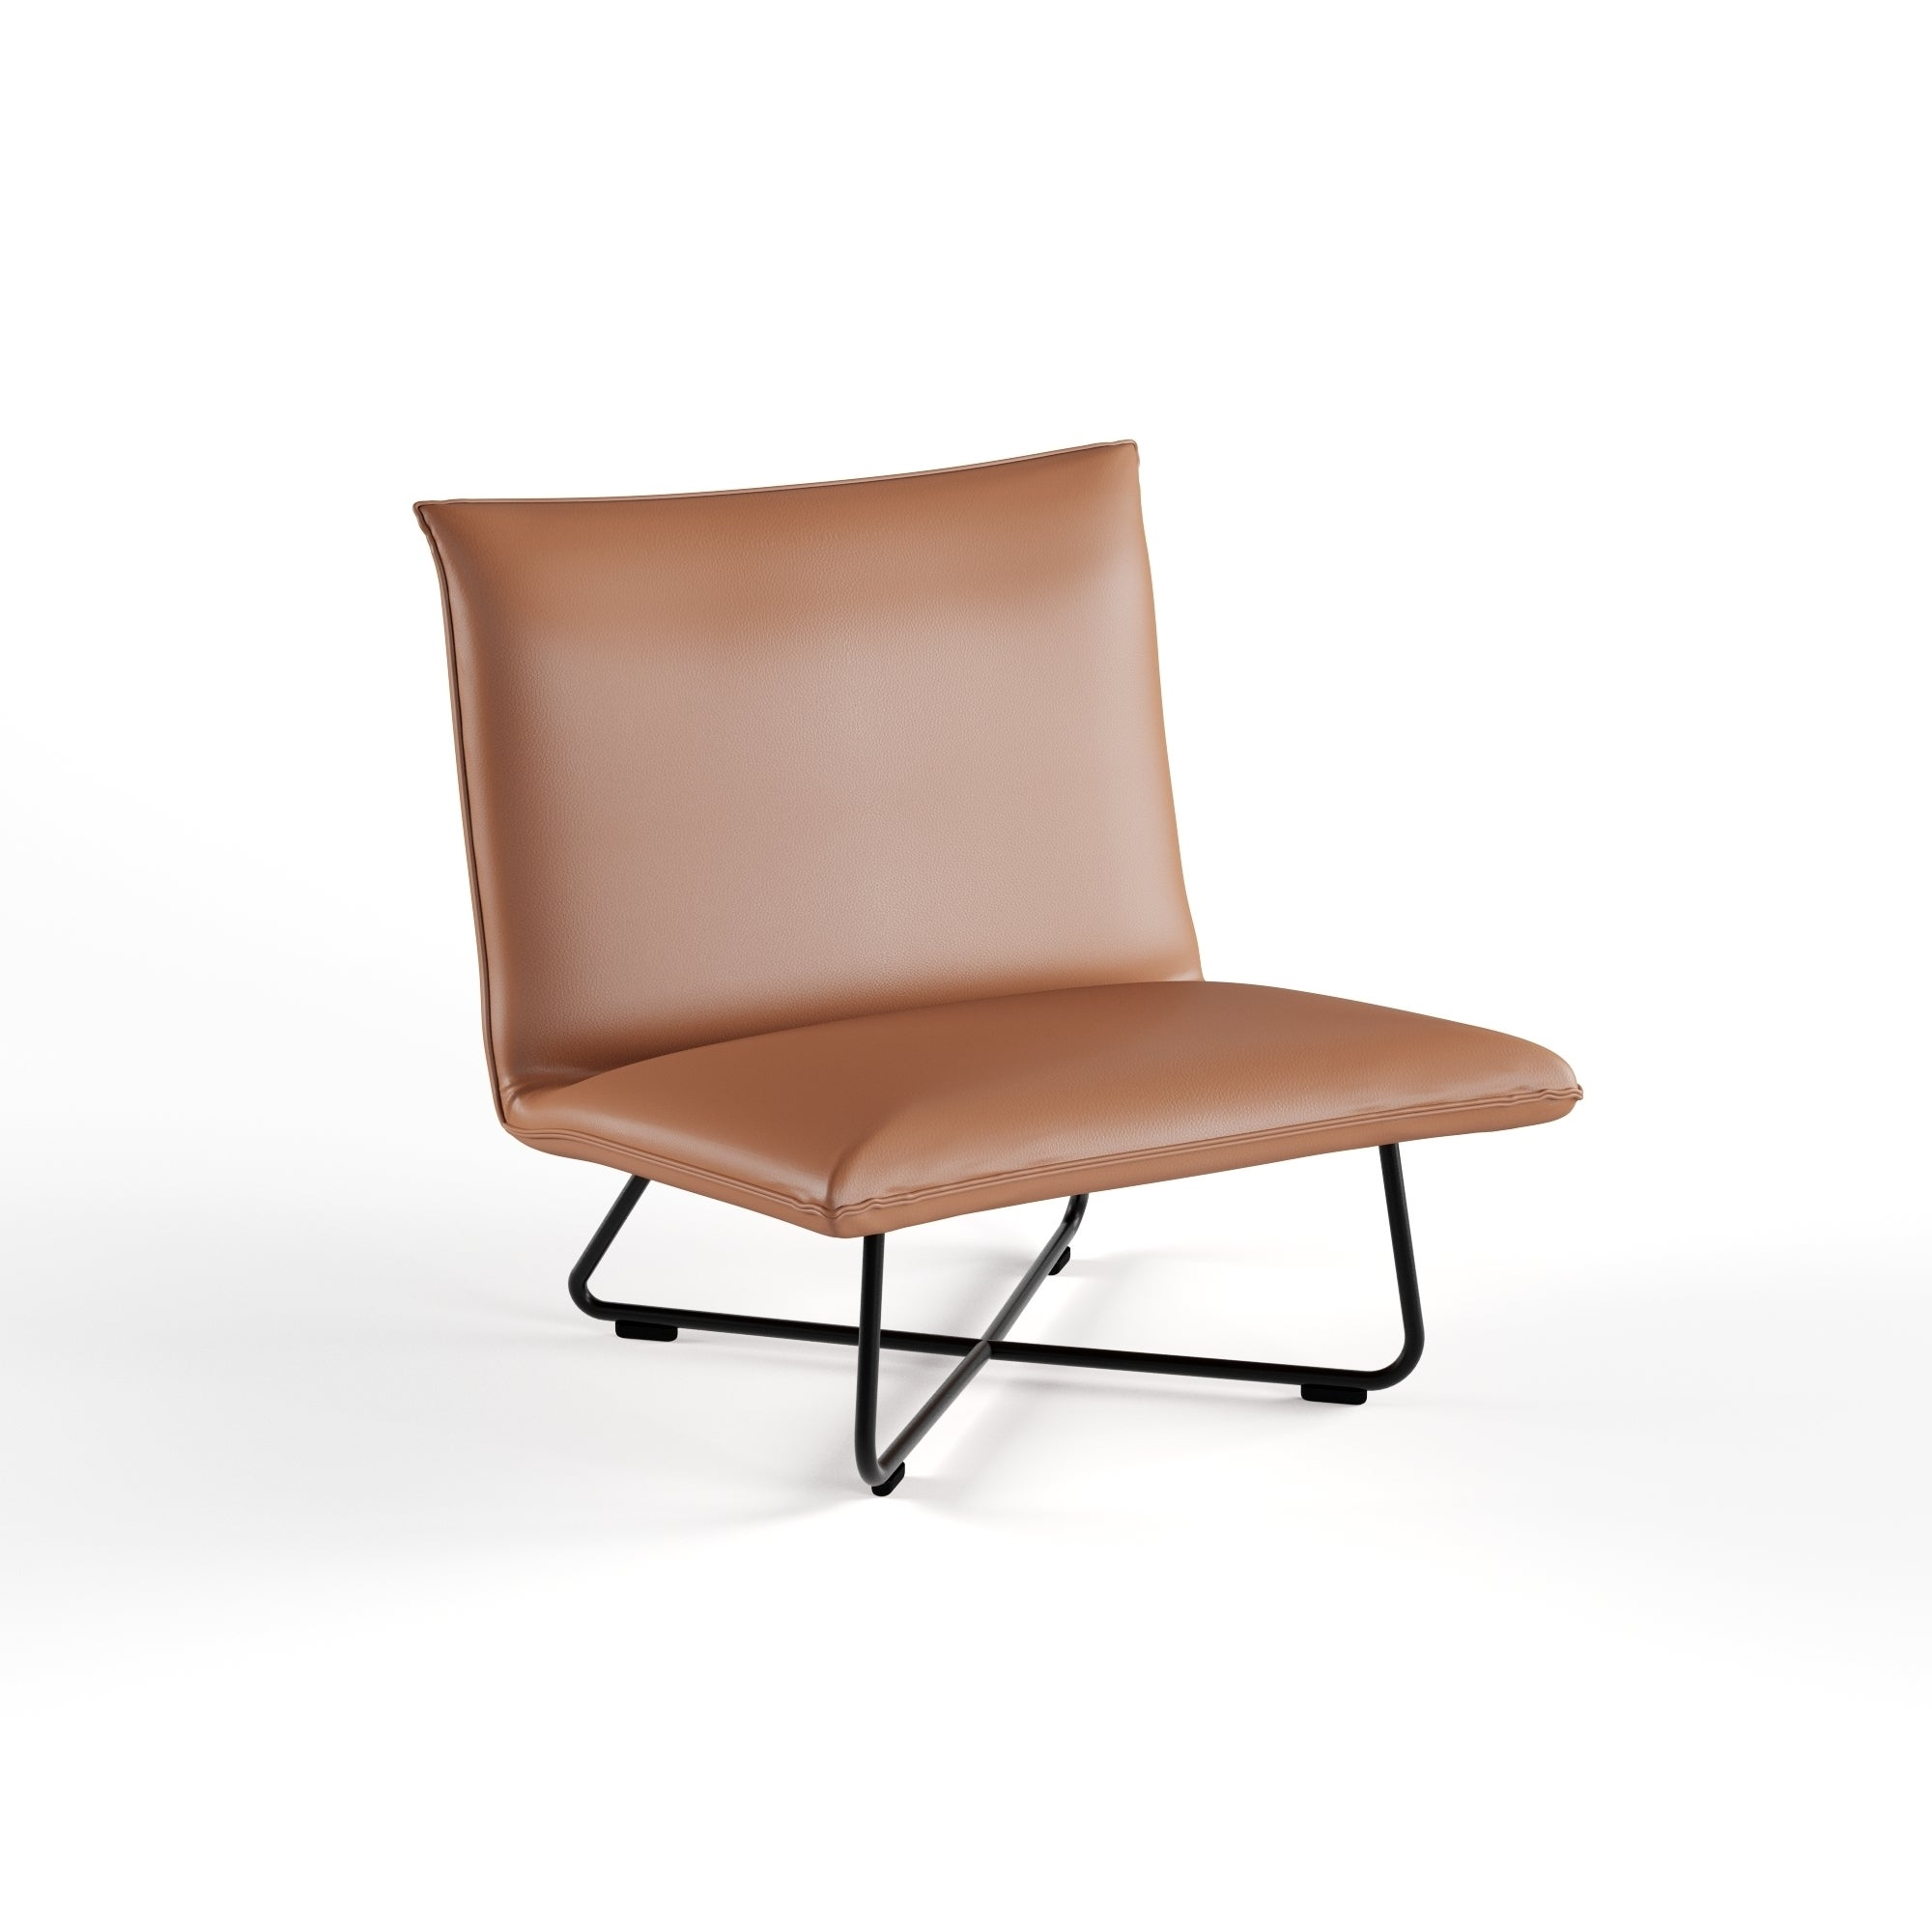 Ordinaire Shop Carson Carrington Saddle Brown Pillow Lounge Chair   Free Shipping  Today   Overstock.com   9363912